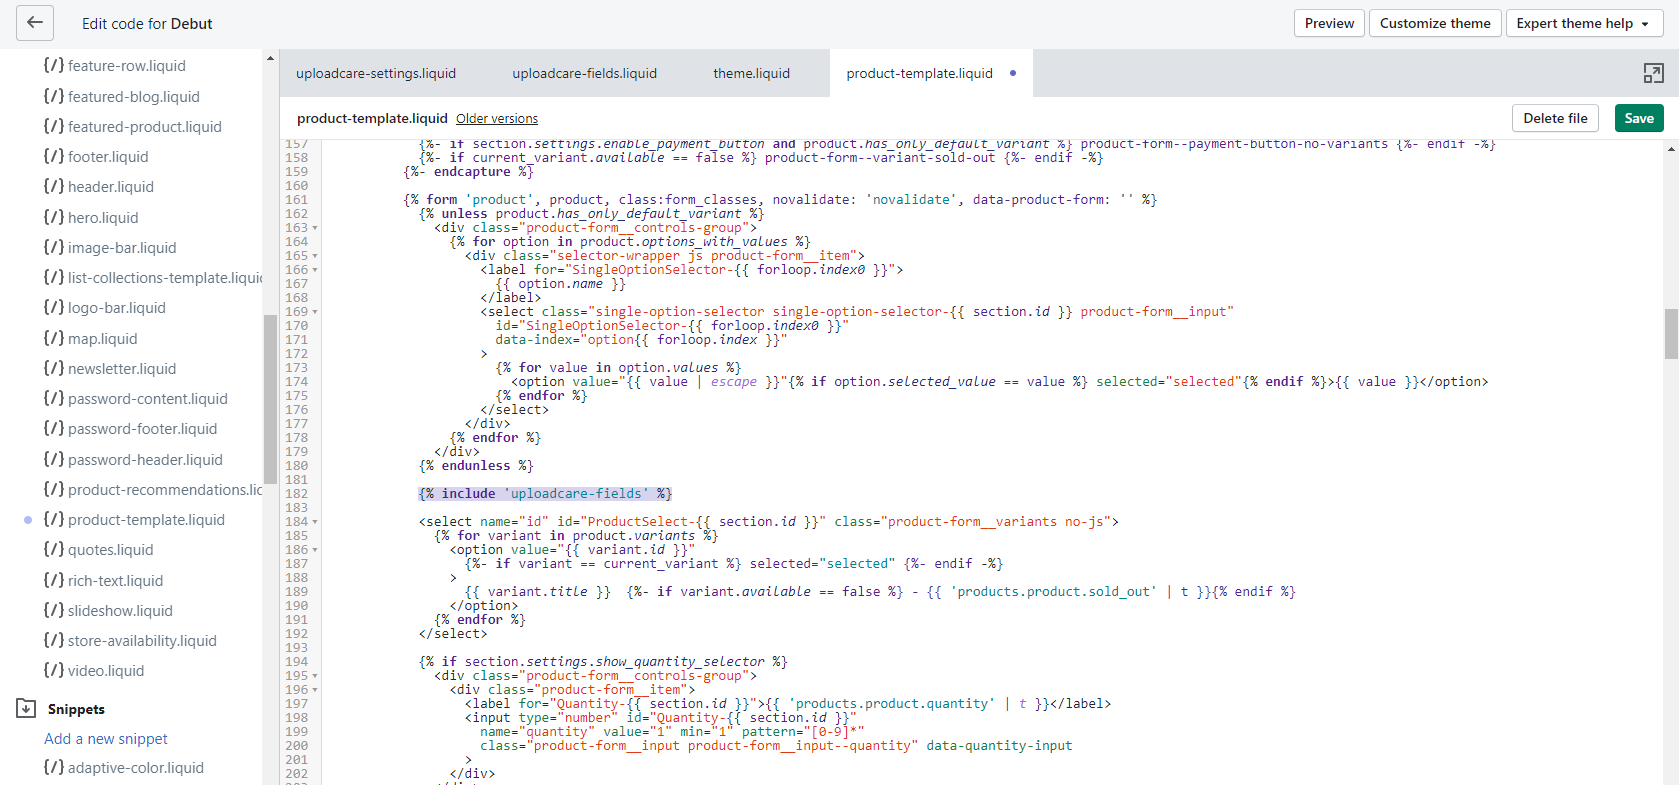 Shopify's code editor